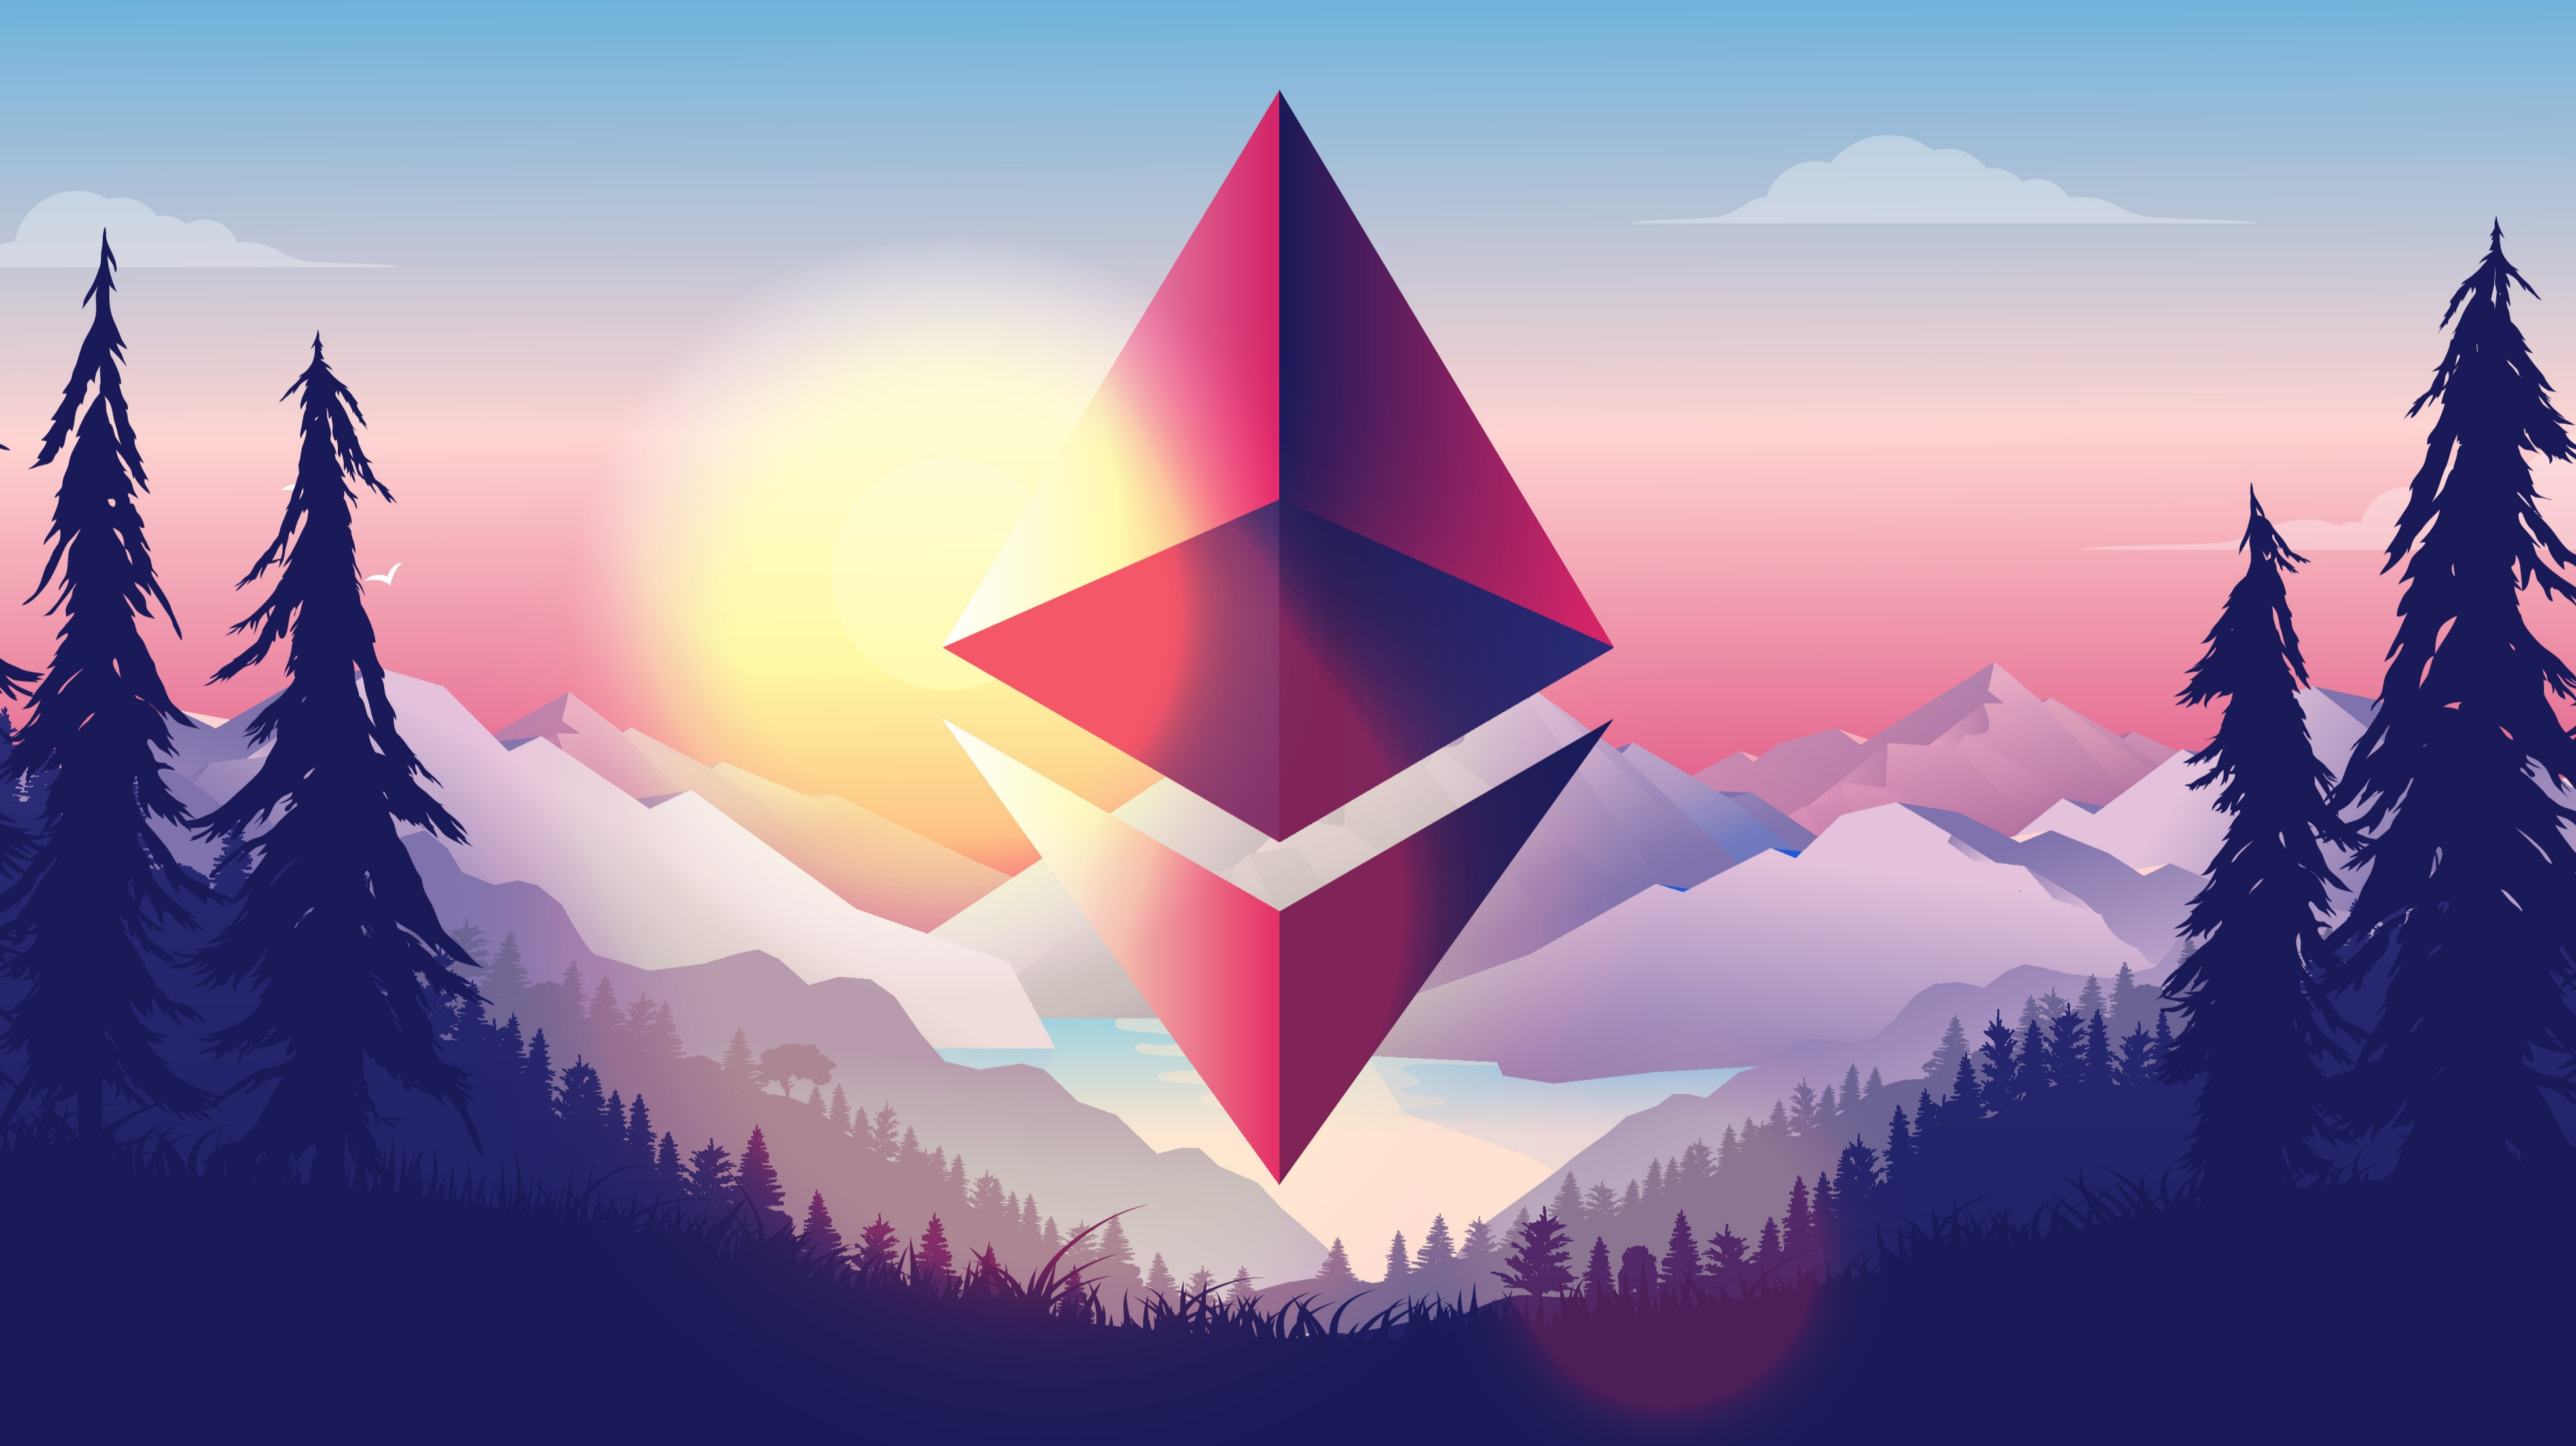 Ethereum: What Makes it Crypto's #1 Smart Contract Blockchain